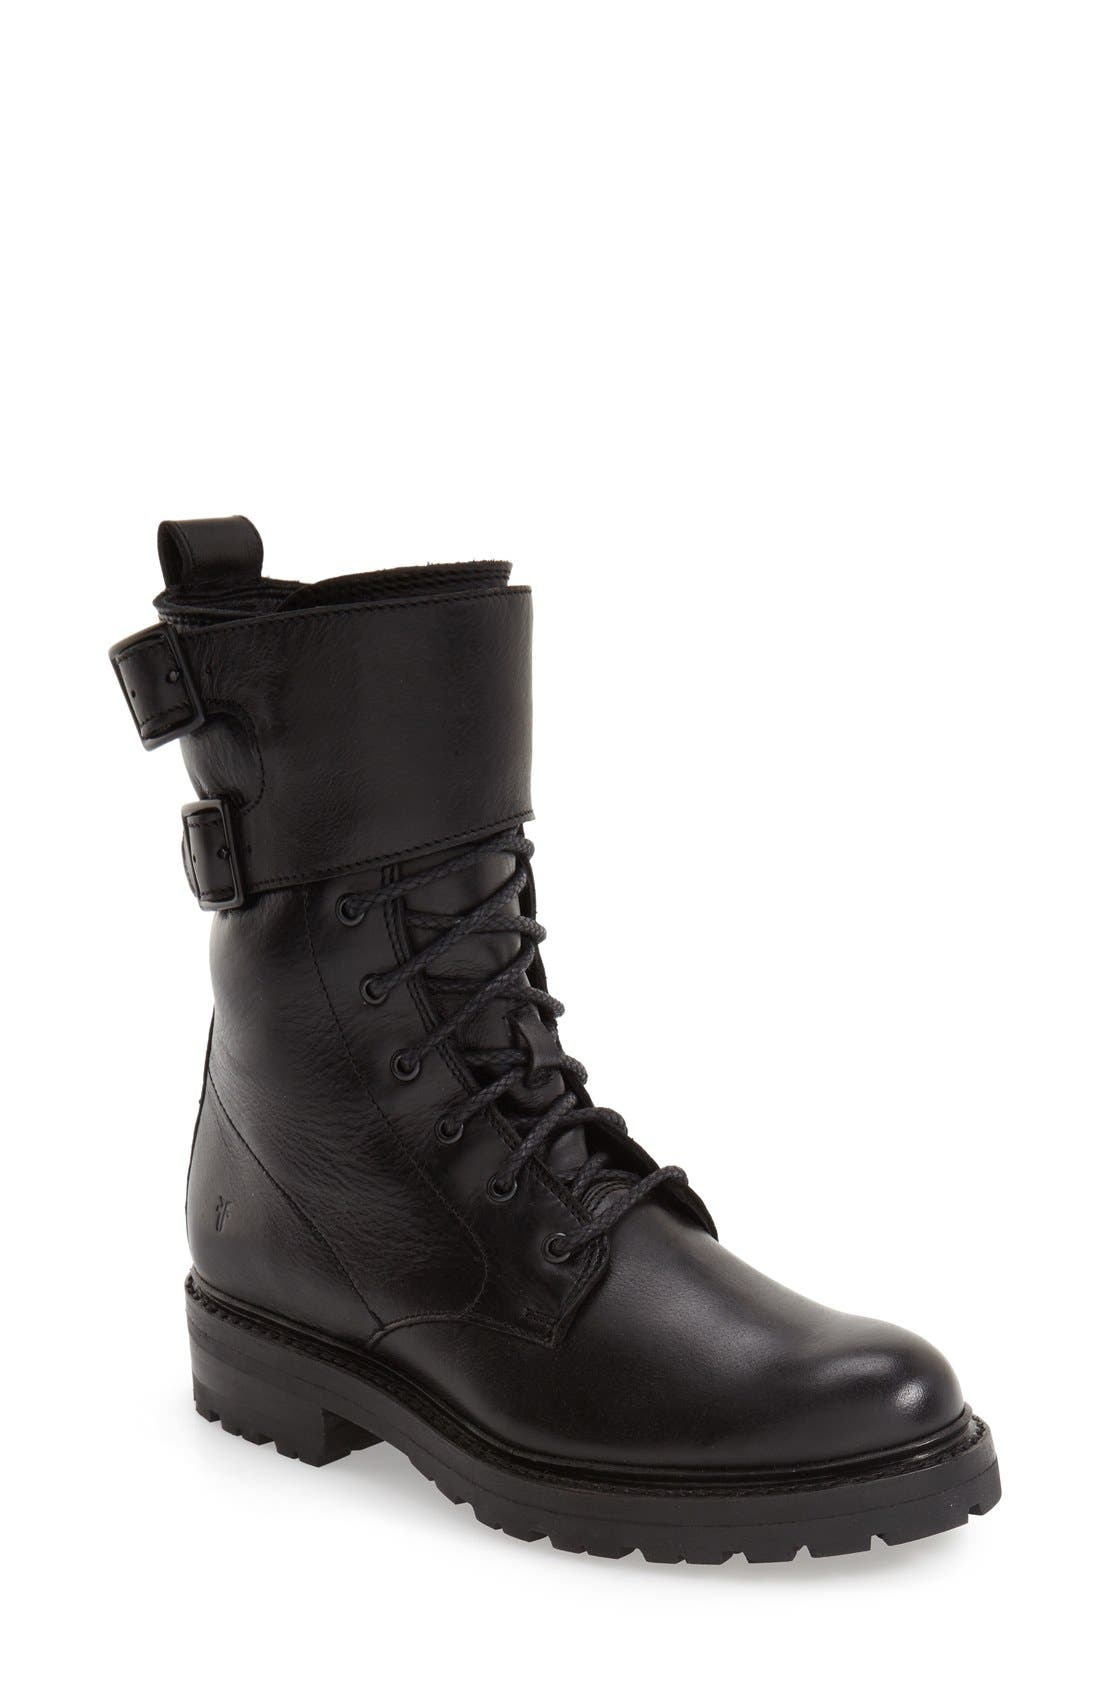 'Julie' Shield Combat Boot,                             Main thumbnail 1, color,                             001